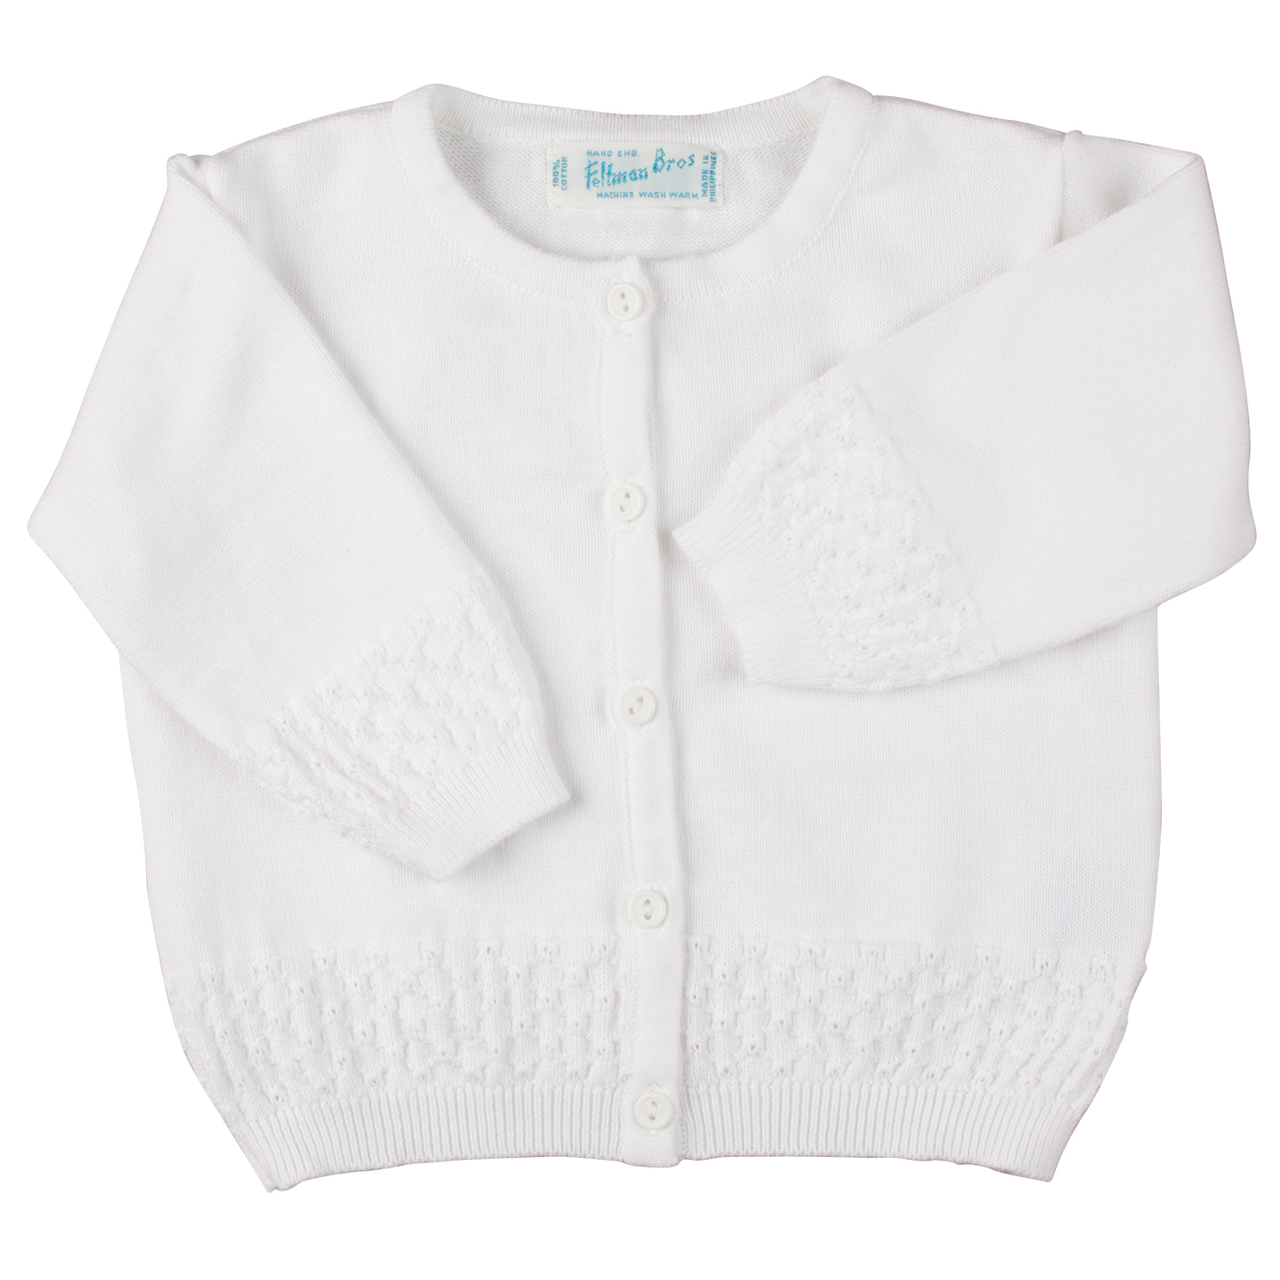 Boys Special Occasion Knit Cardigan   Feltman Brothers